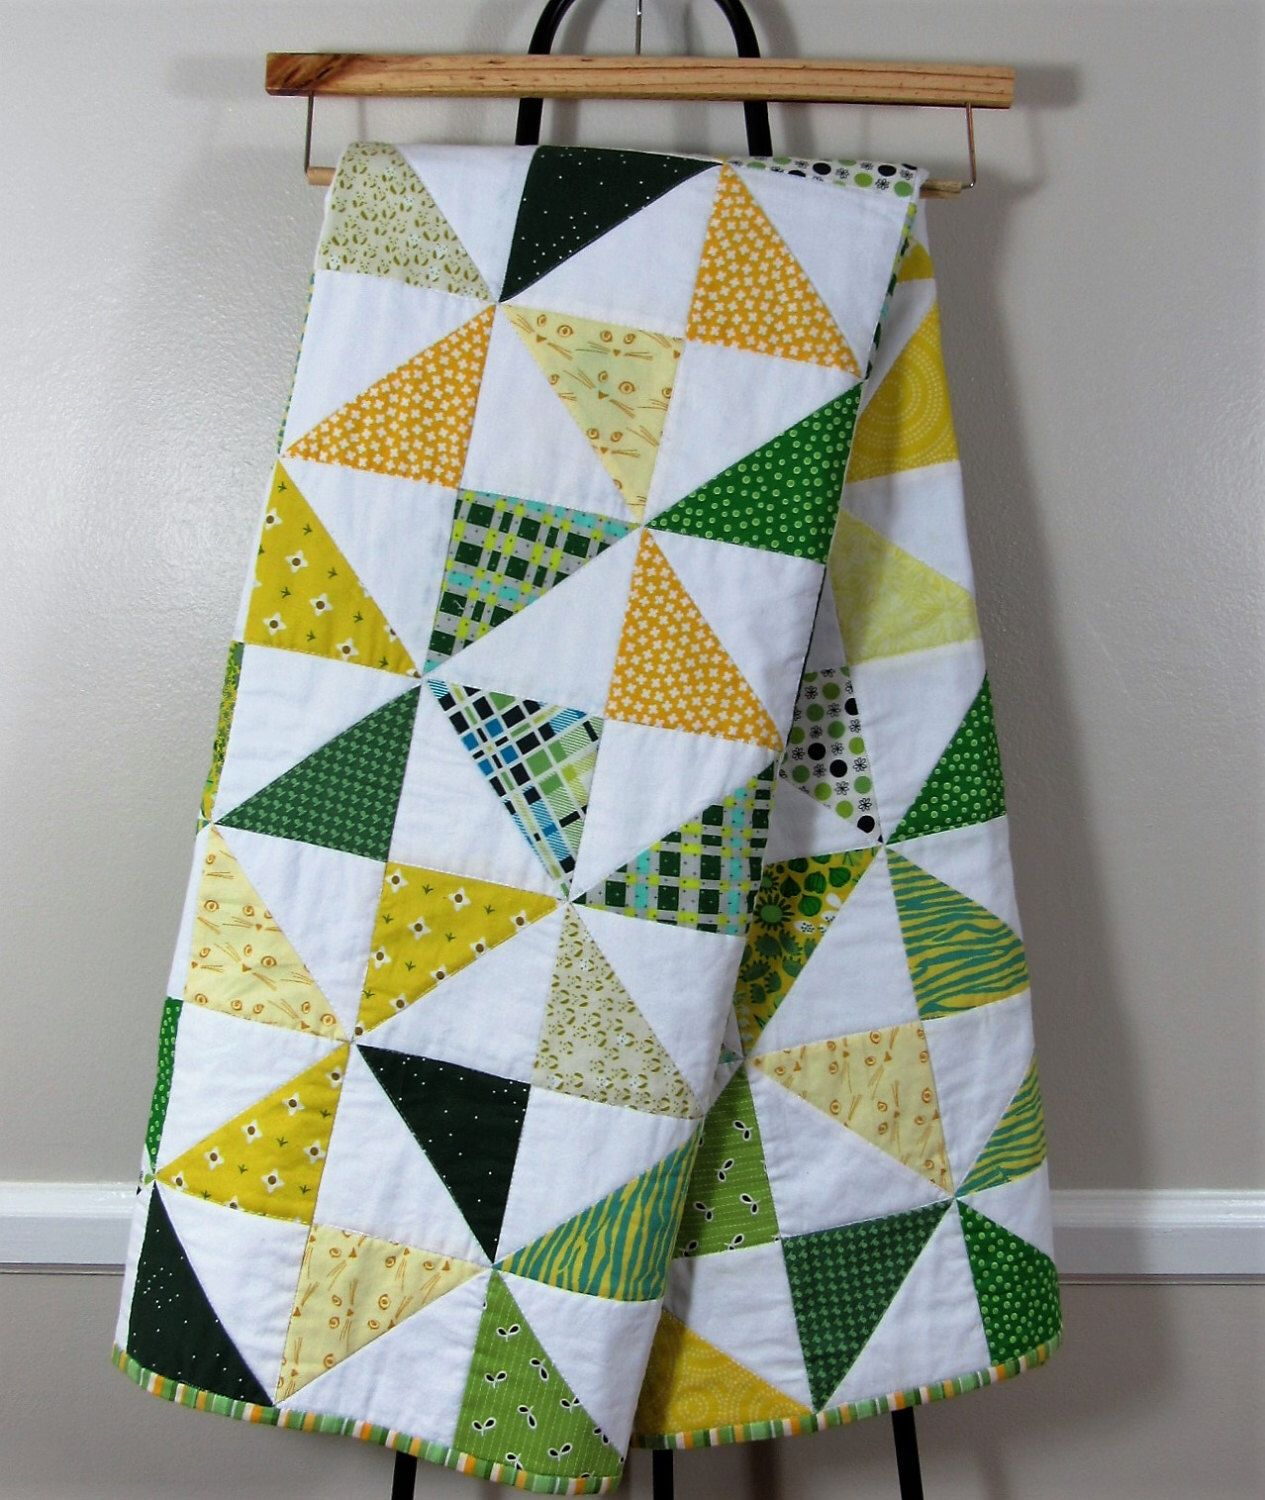 Baylor University Quilt, Oregon Quilt, Pinwheel Quilt, Gender ... : gender neutral quilts - Adamdwight.com